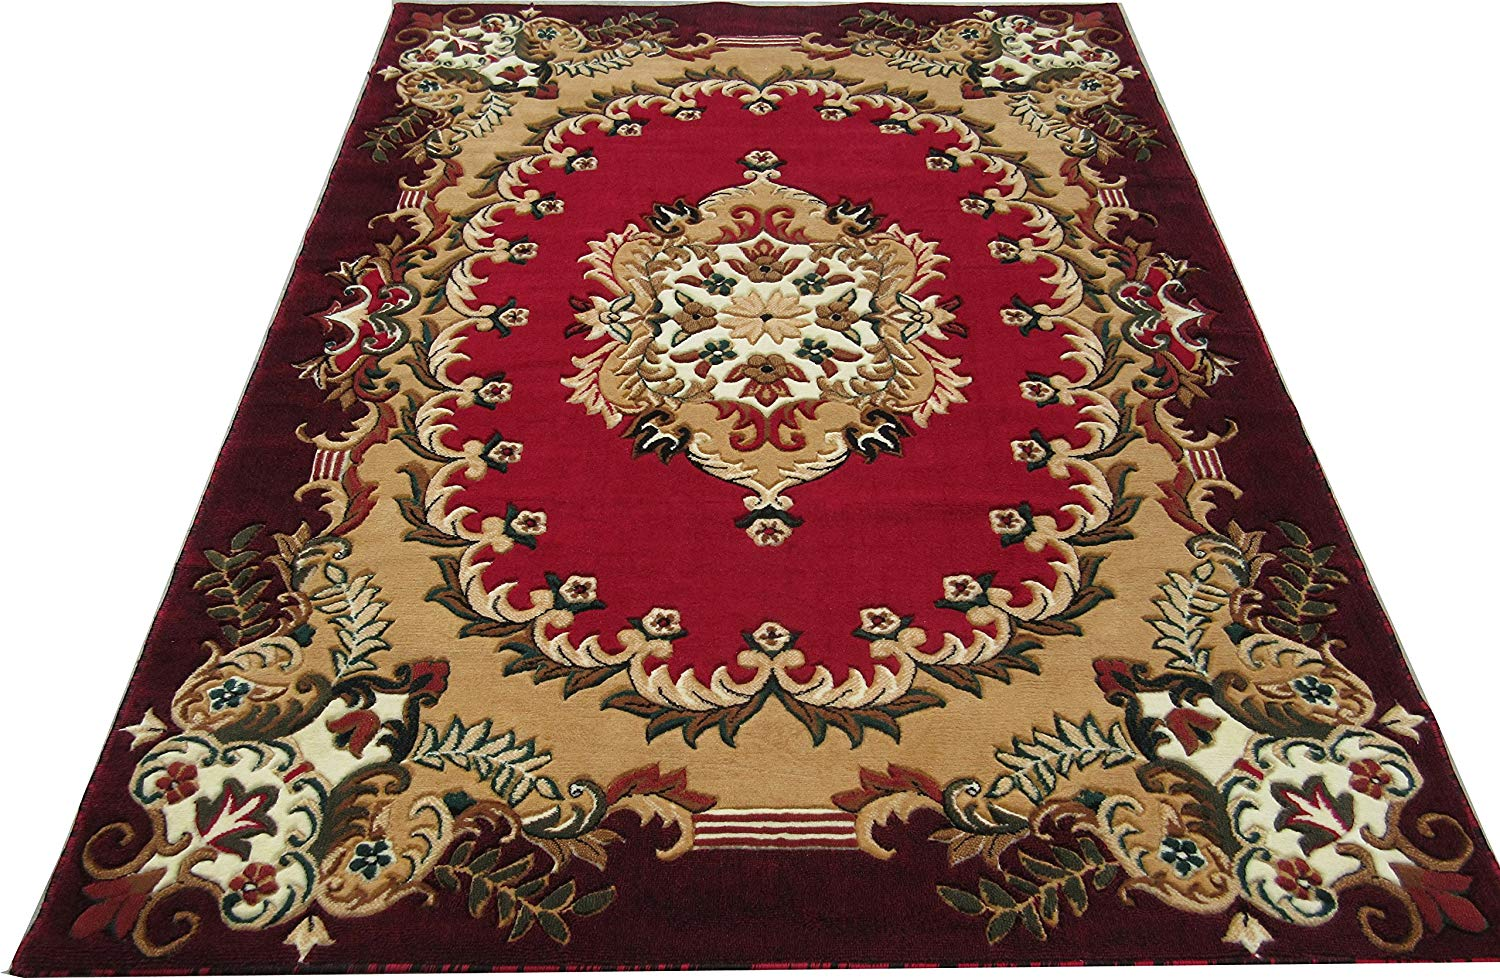 lanextr diamond series traditional persian carpet with carving for living room bedroom floor and. Black Bedroom Furniture Sets. Home Design Ideas